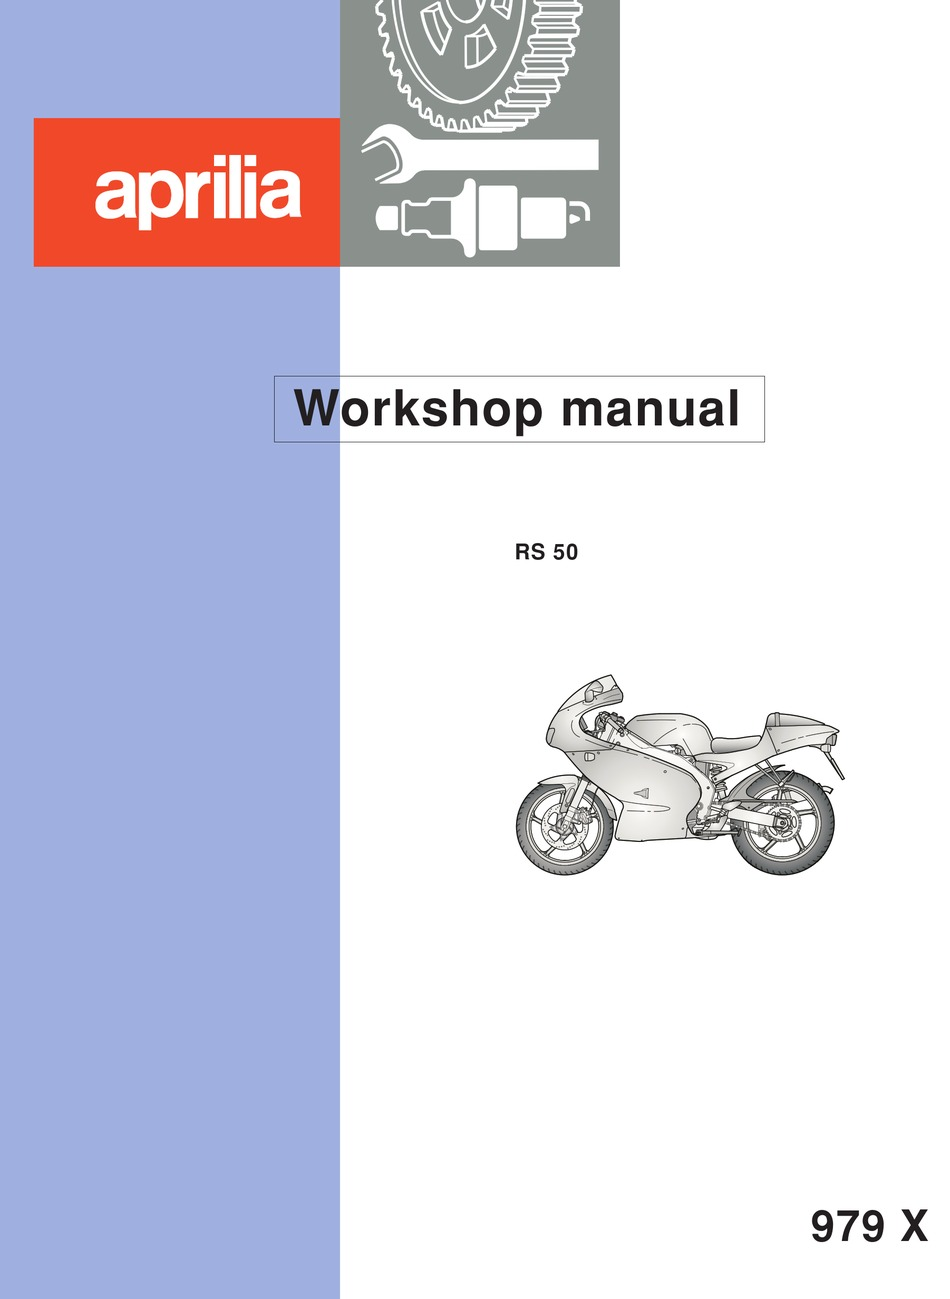 Aprilia Rs 50 Workshop Manual Pdf Download Manualslib